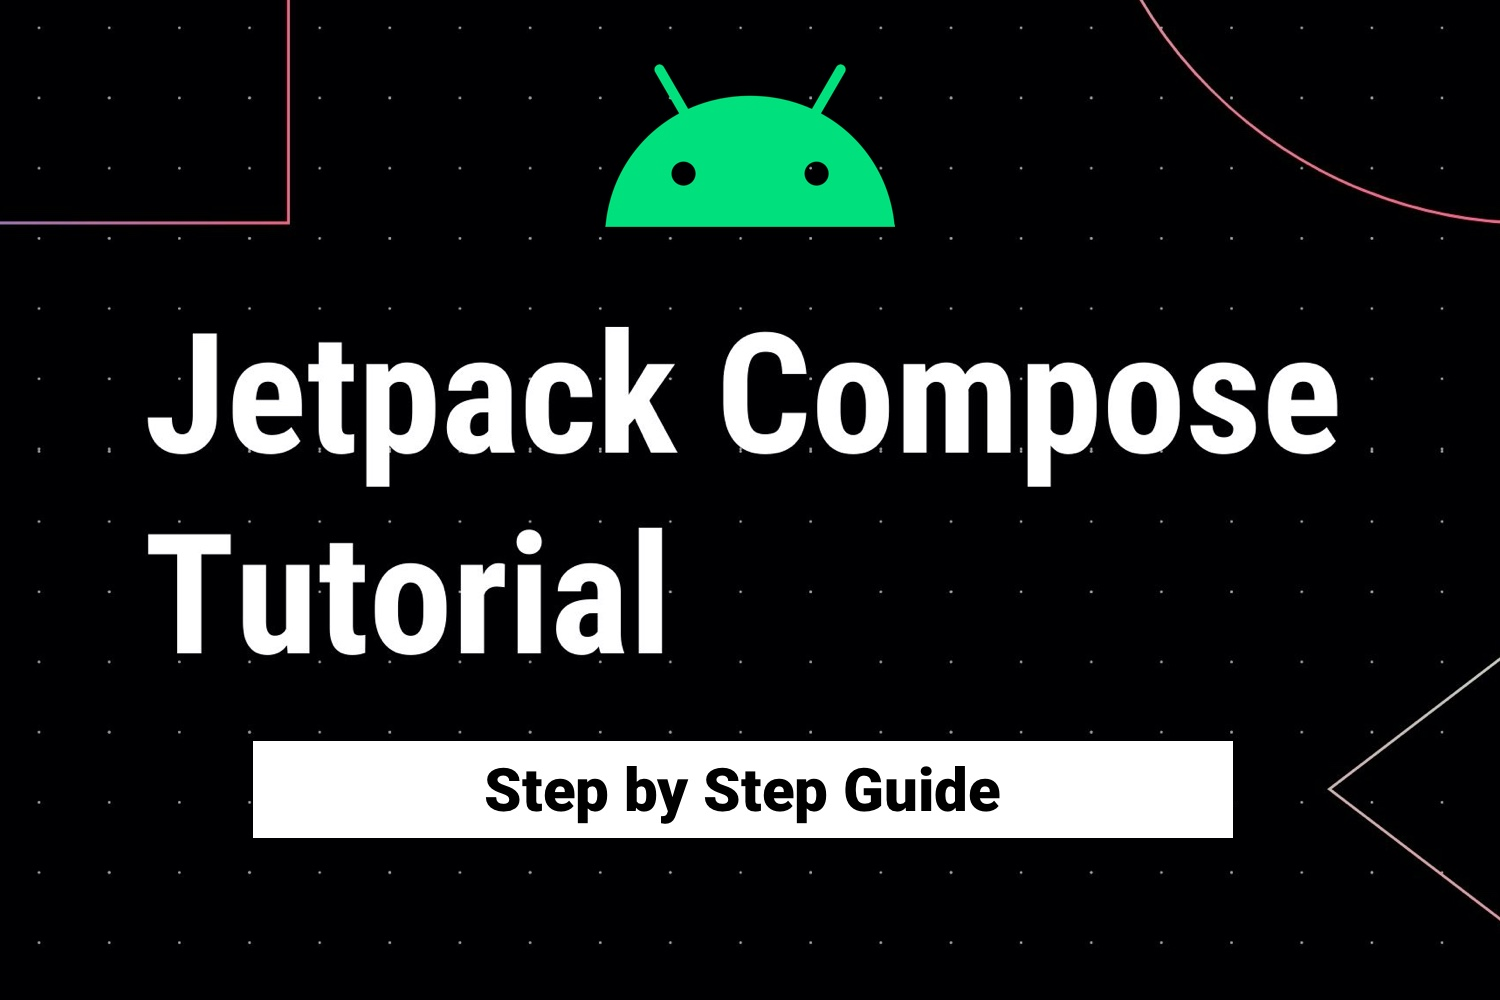 Jetpack Compose Tutorial - Step by Step Guide